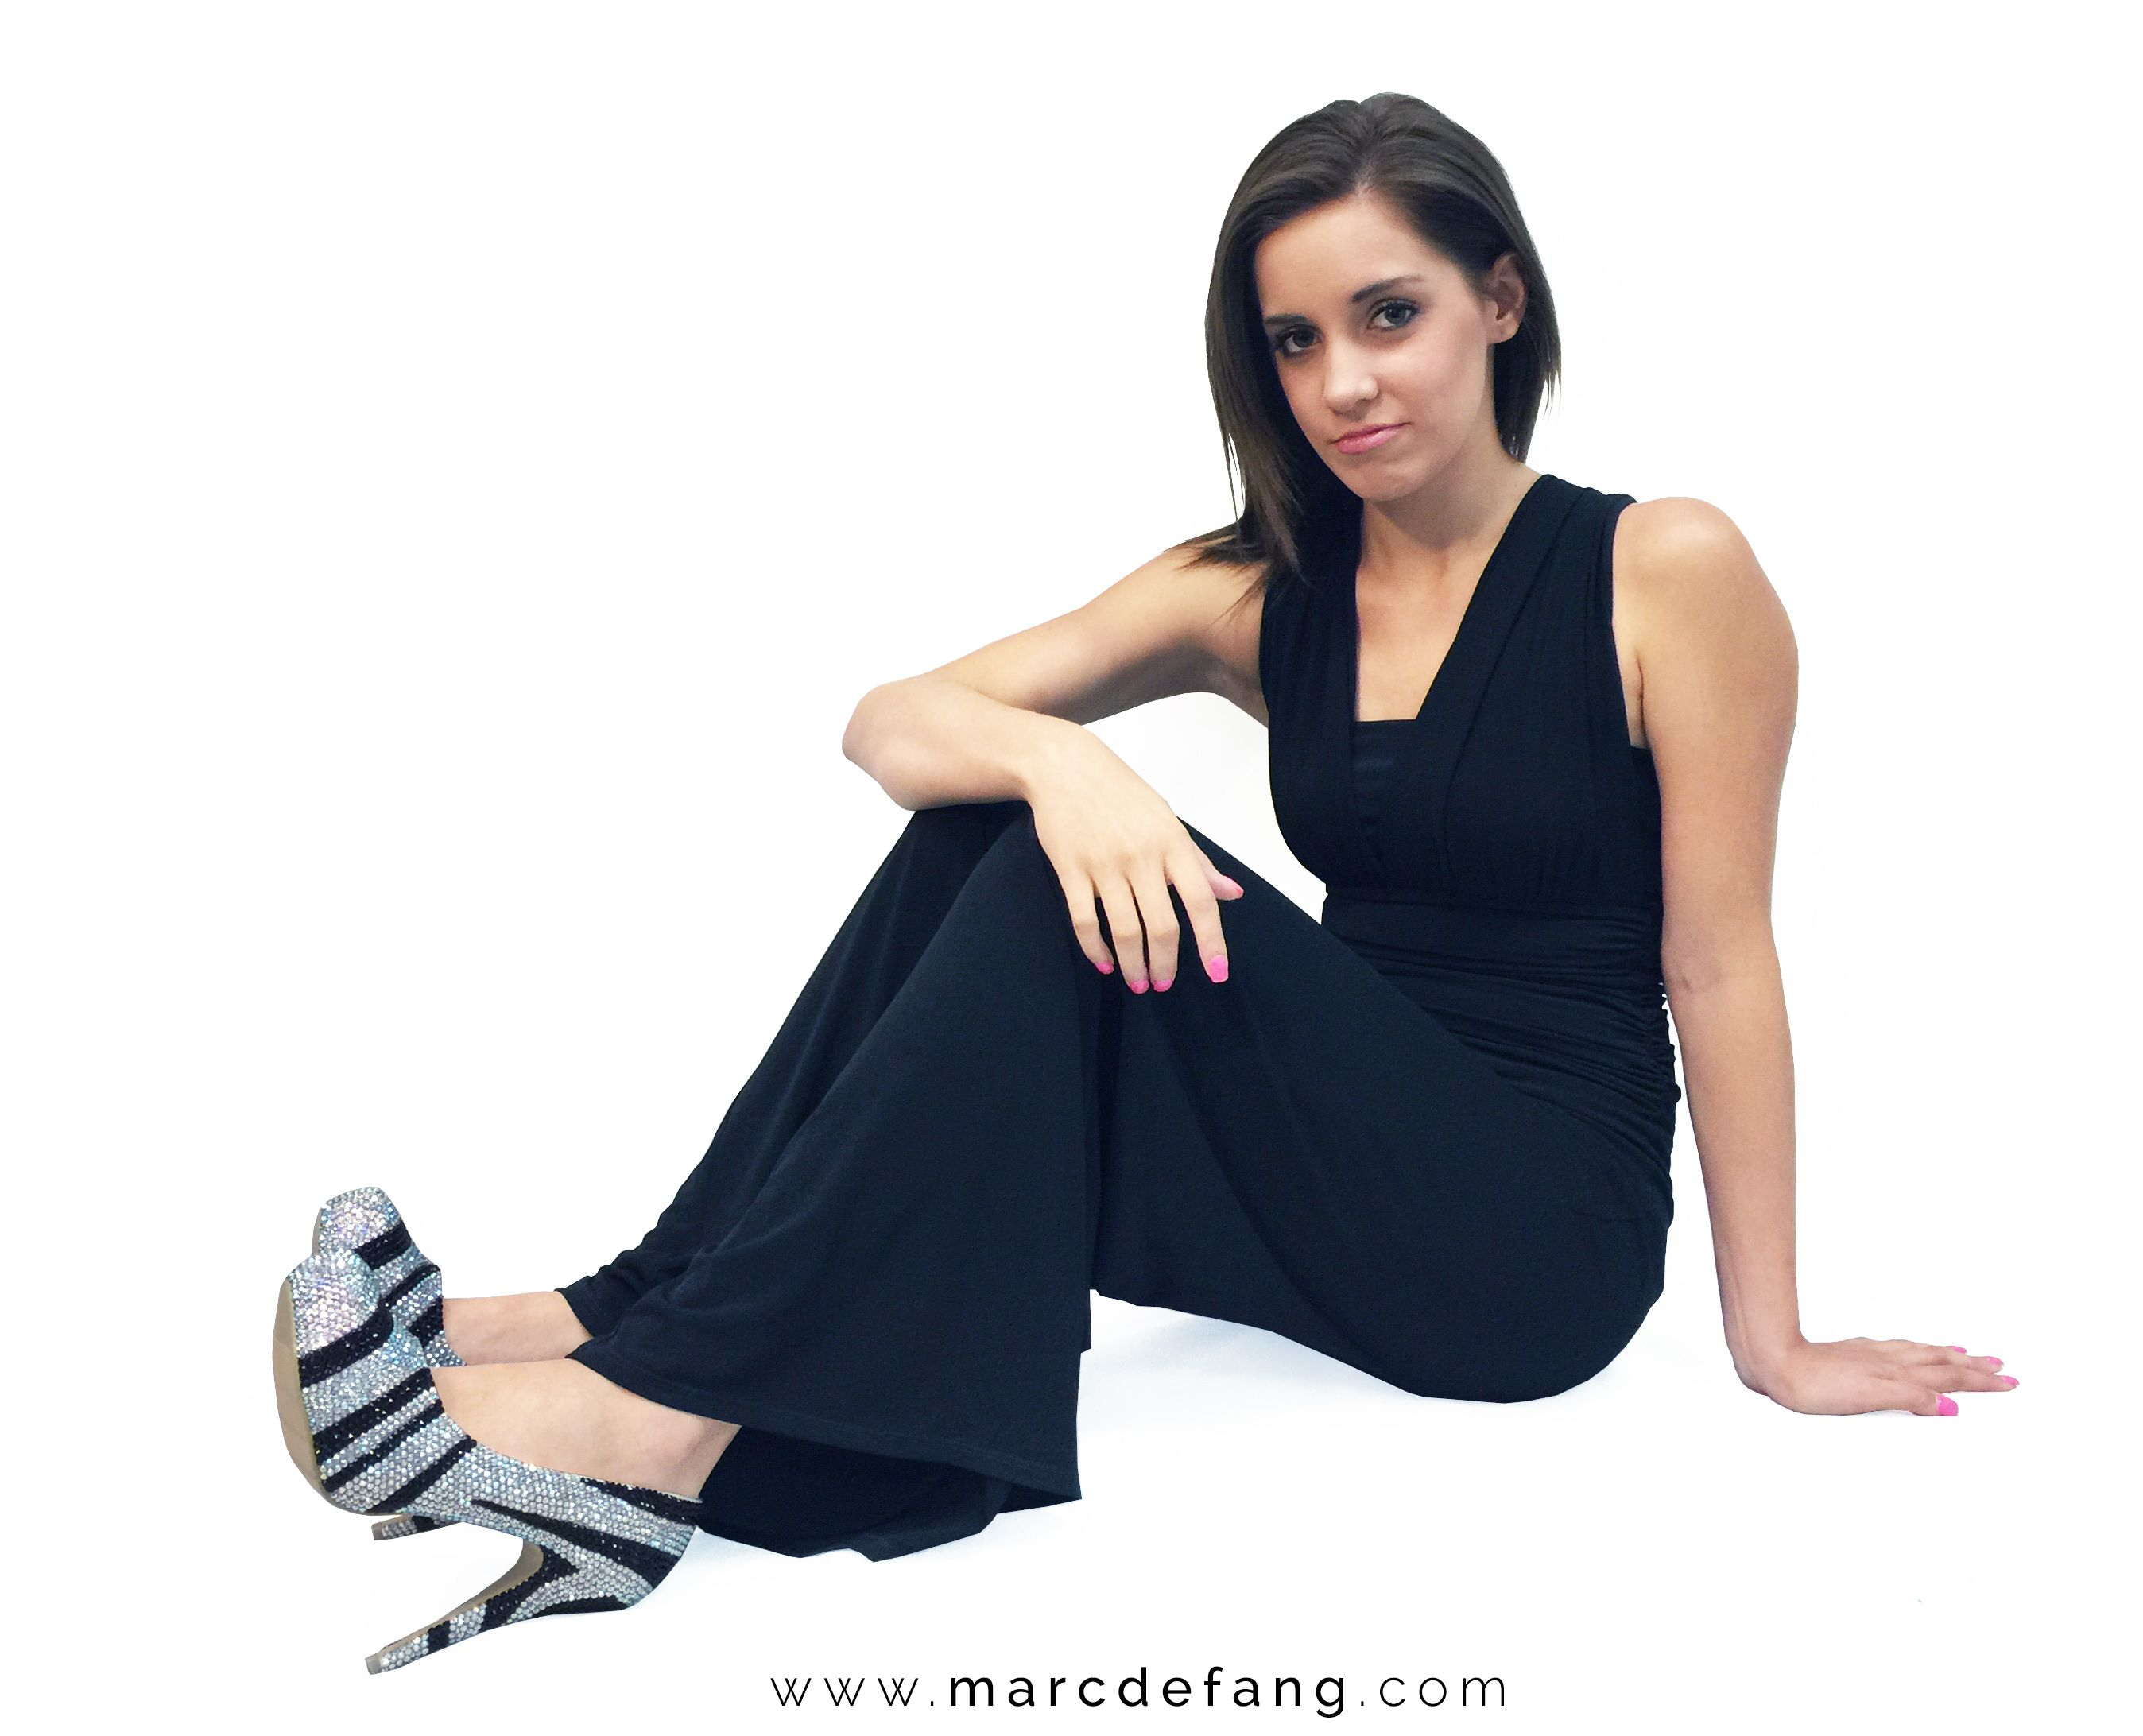 Suitable for all occasions, gowns, jeans and work attire, these Marc Defang AB crystal Jet Black Stripe Heels are designed for your EVERYDAY WEAR.  <3 <3 <3  http://www.marcdefang.com/irregular-stripes-luxury-formal-wear-platform-heels/